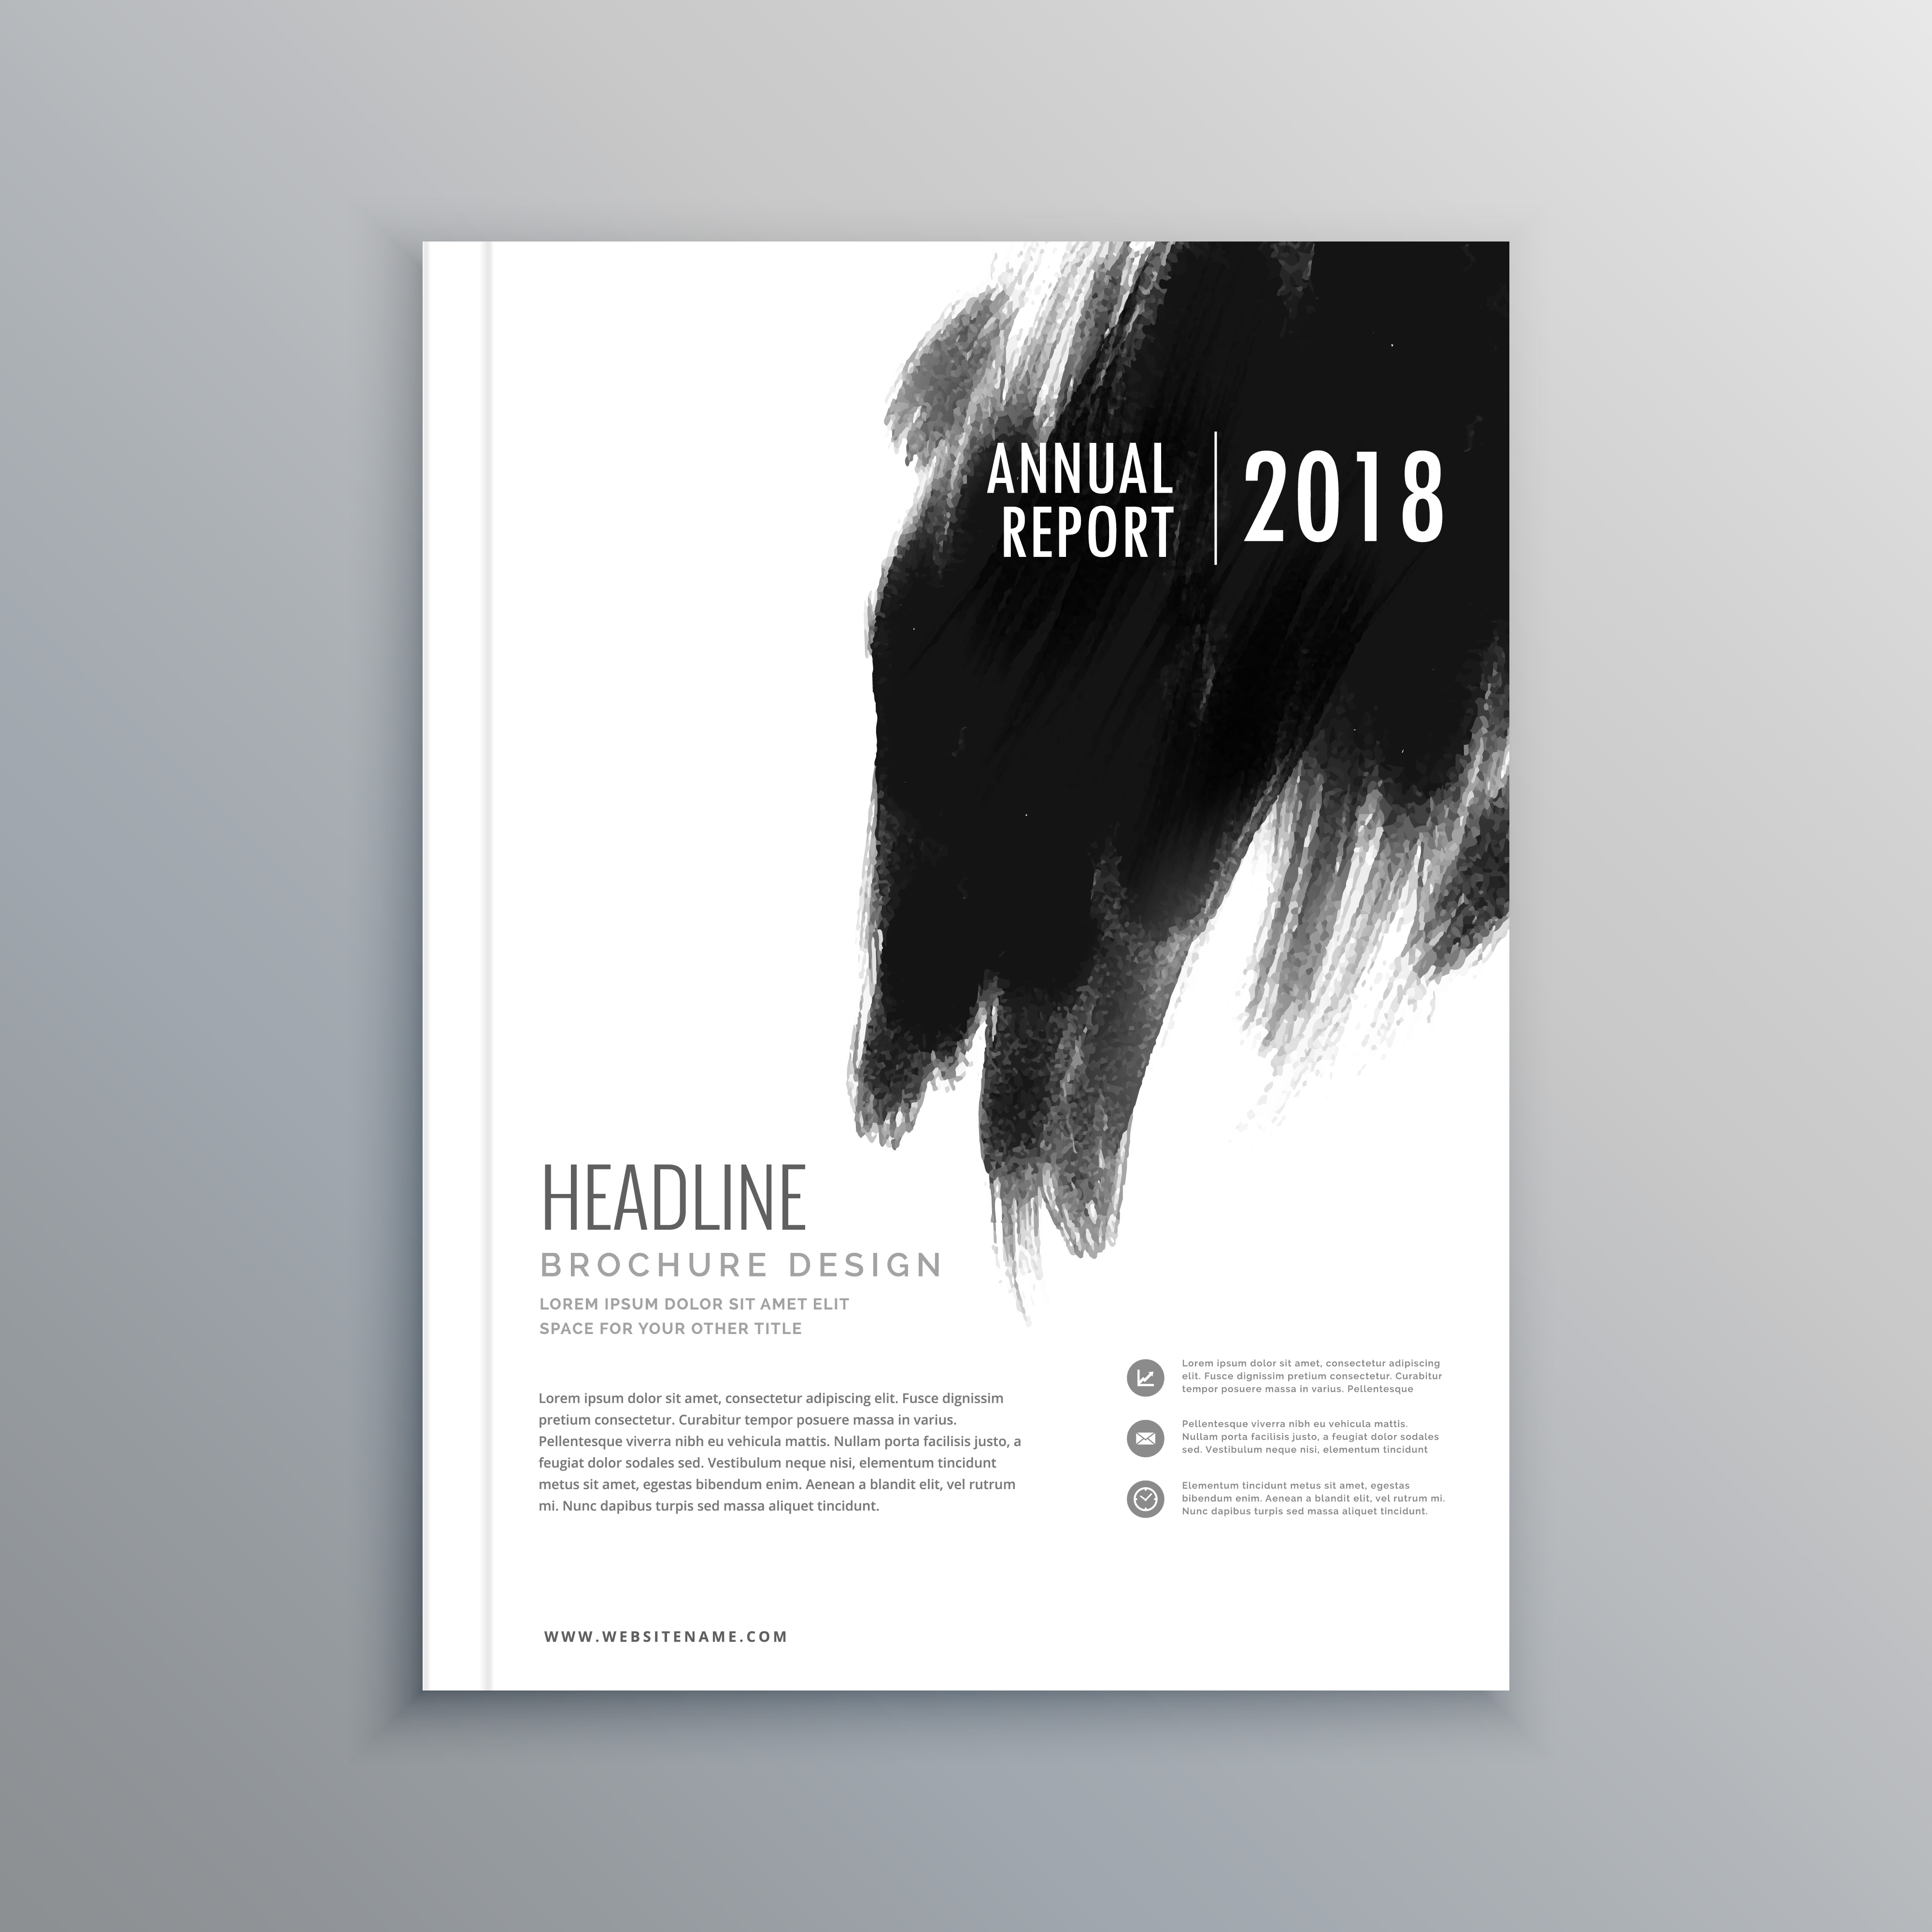 Art Calendar Business Magazine : Creative business magazine cover page layout with black